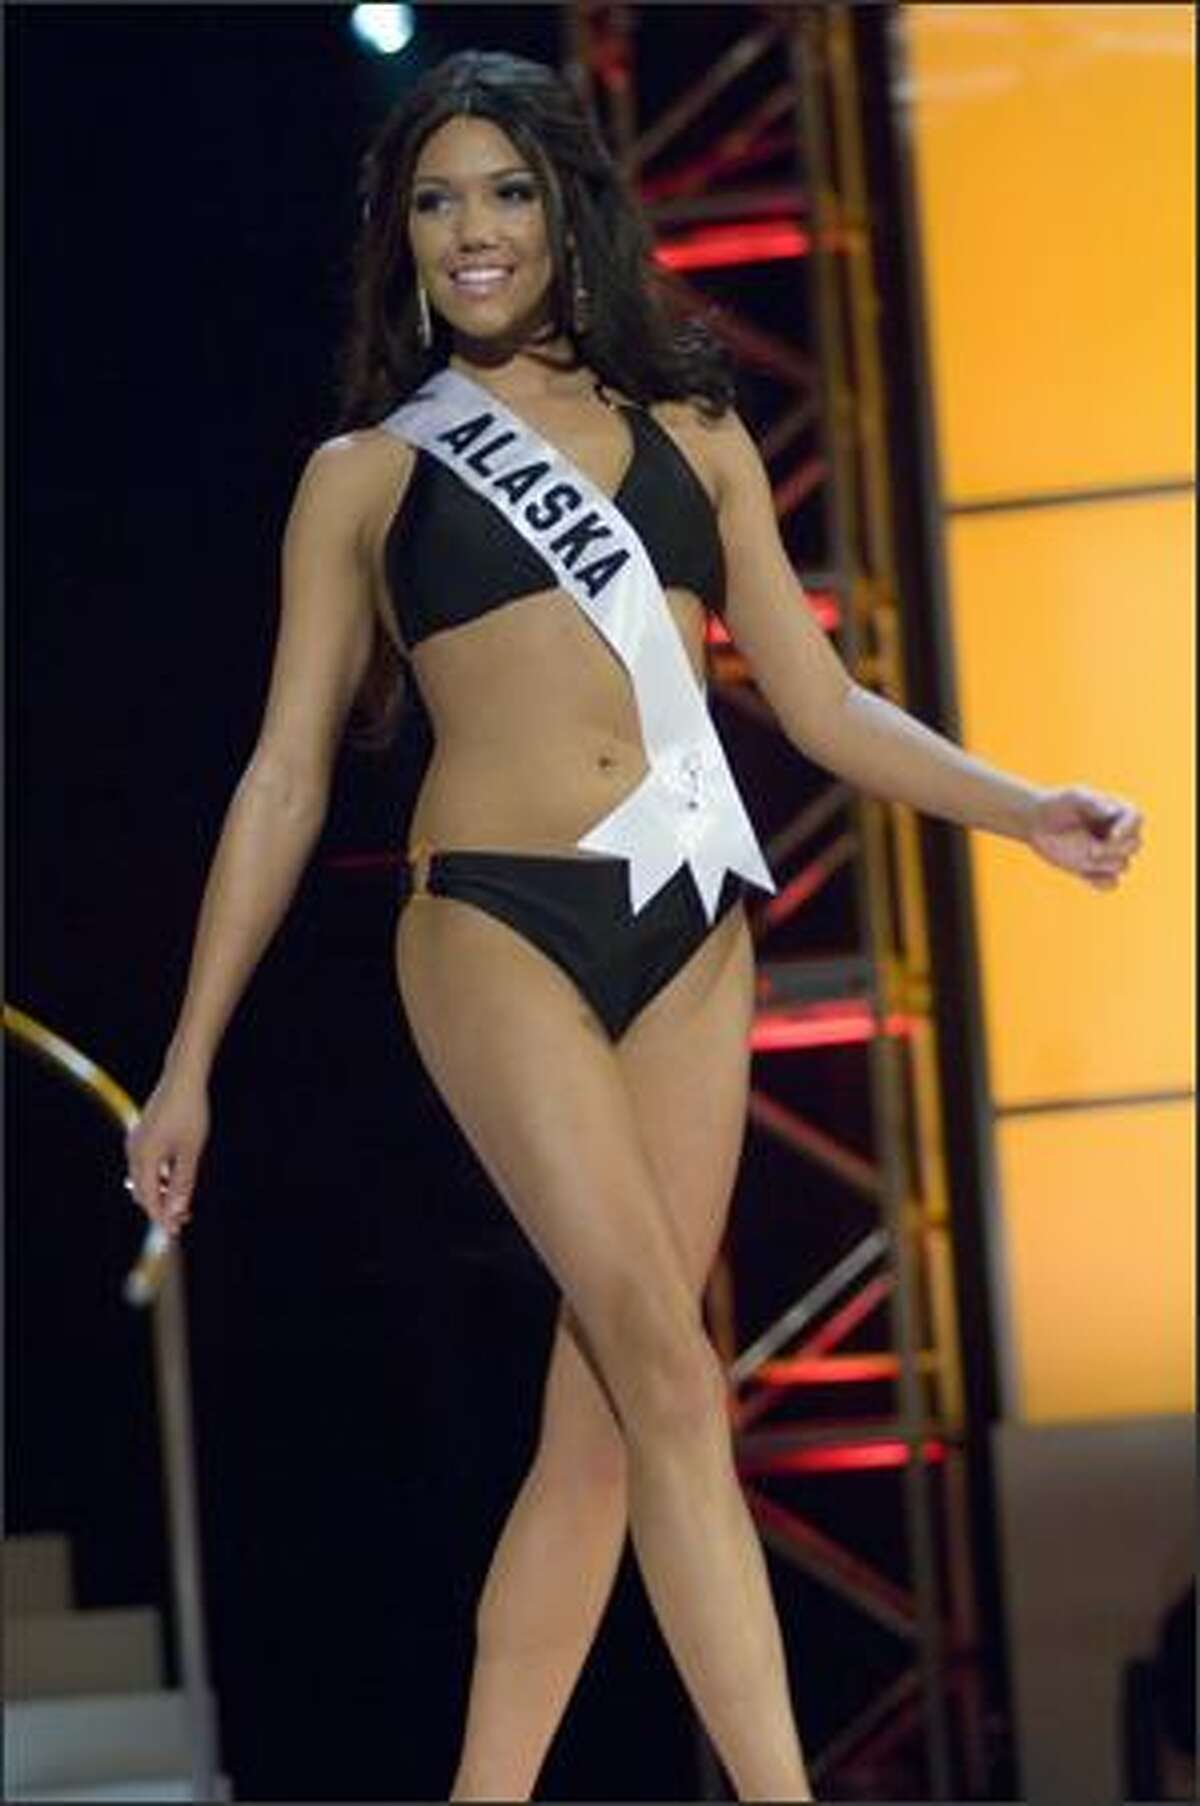 Courtney Erin Carroll, Miss Alaska USA 2008, performs during the swimsuit competition at the 2008 Miss USA Presentation Show in the Planet Hollywood Theatre in Las Vegas on April 5. The Presentation Show is part of preliminary judging, in which the 51 contestants are judged on swimsuits, evening gowns and interviews. The top 15 after preliminary judging will be announced at the outset of the finals on Friday, April 11. A completely different panel of judges will then judge the top 15 in swimsuits to narrow the field to 10; those 10 will then be judged in evening gowns to narrow the field to five, who will answer questions in a mini-interview before Miss USA 2008 is named.